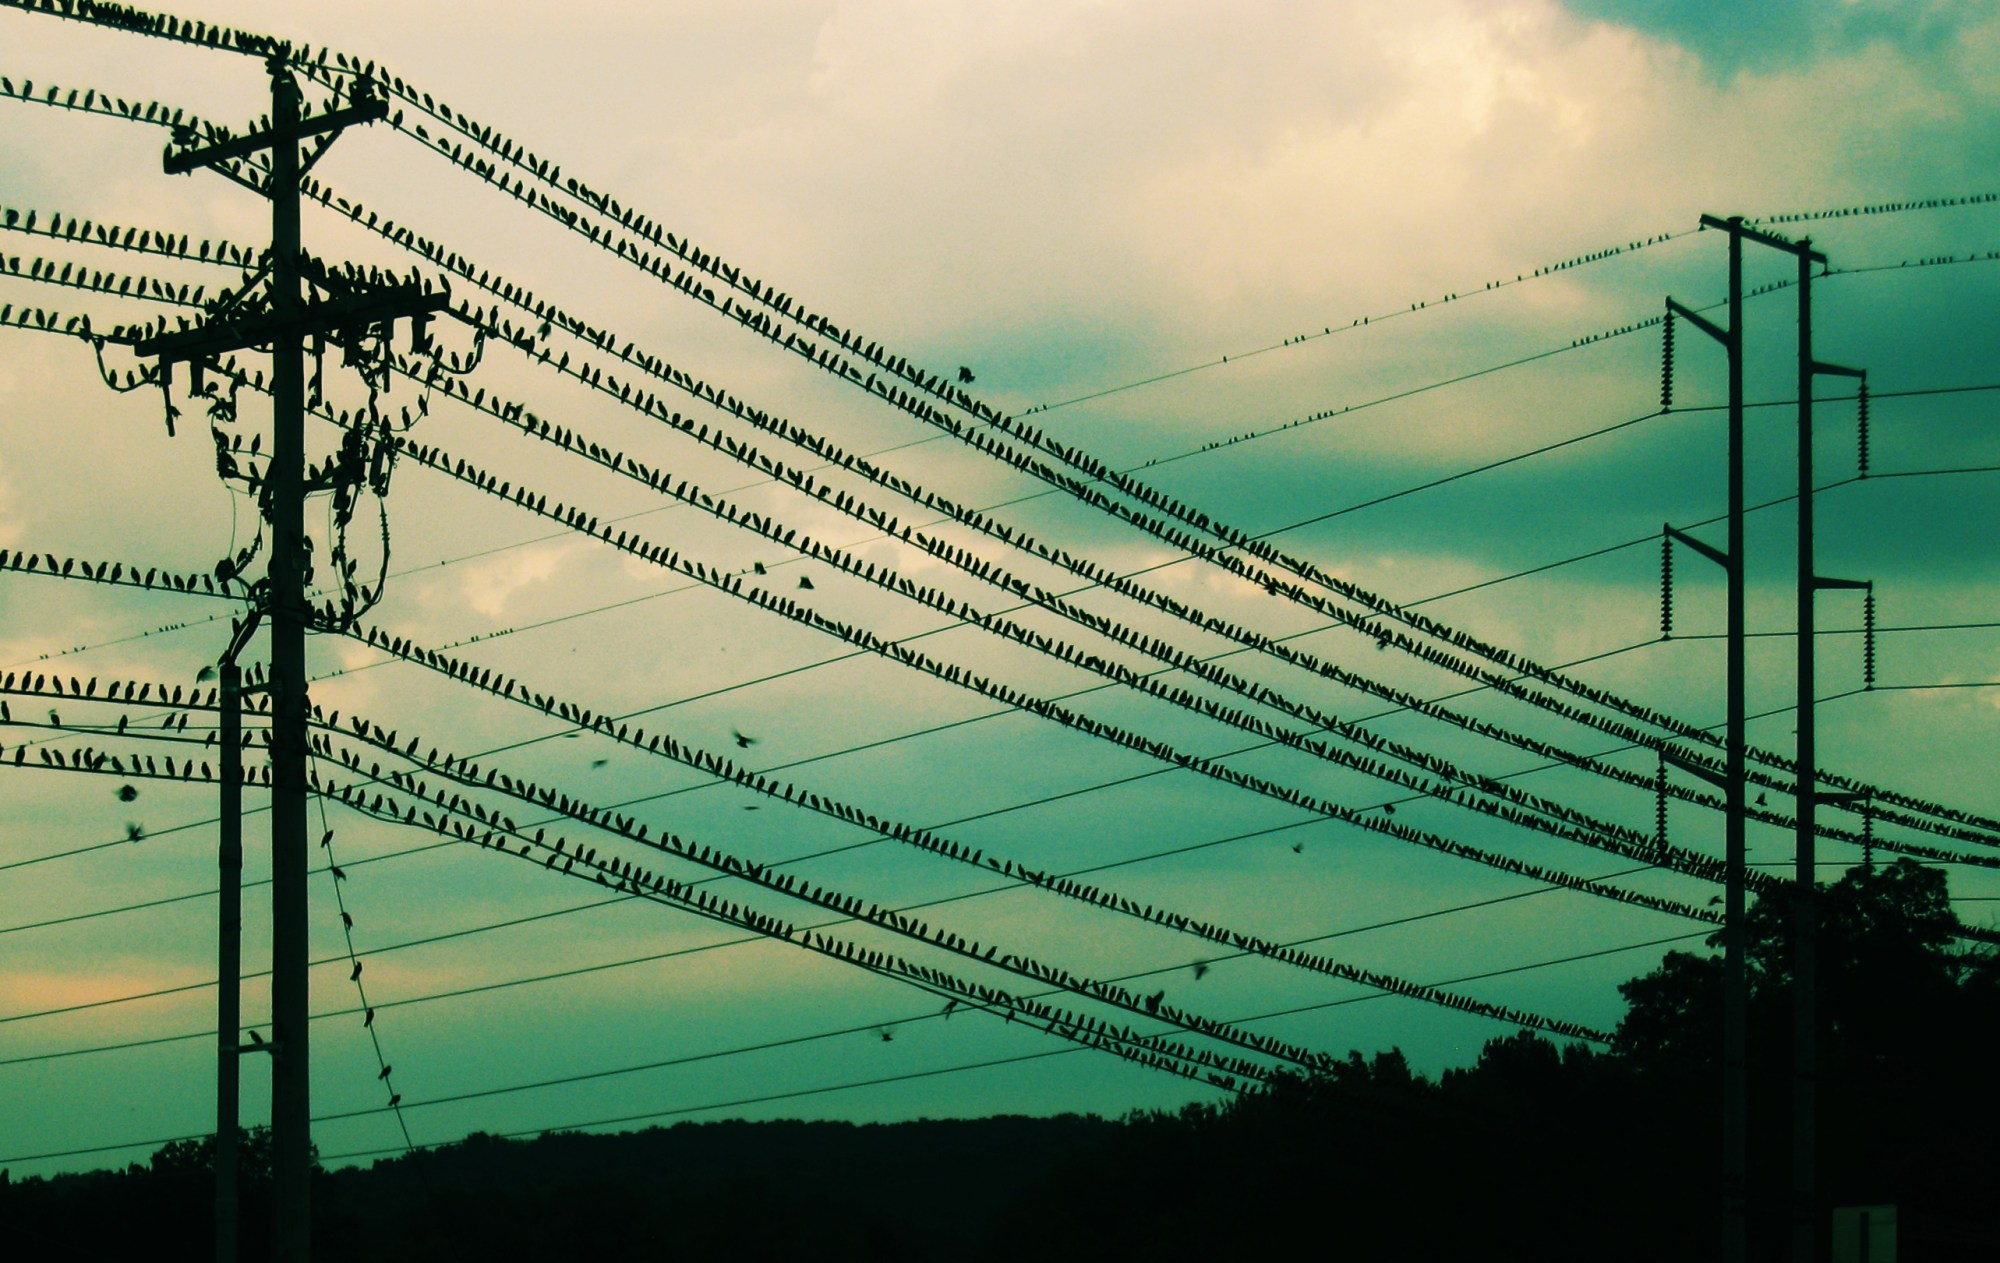 hight resolution of how do birds sit on power lines without getting electrocuted